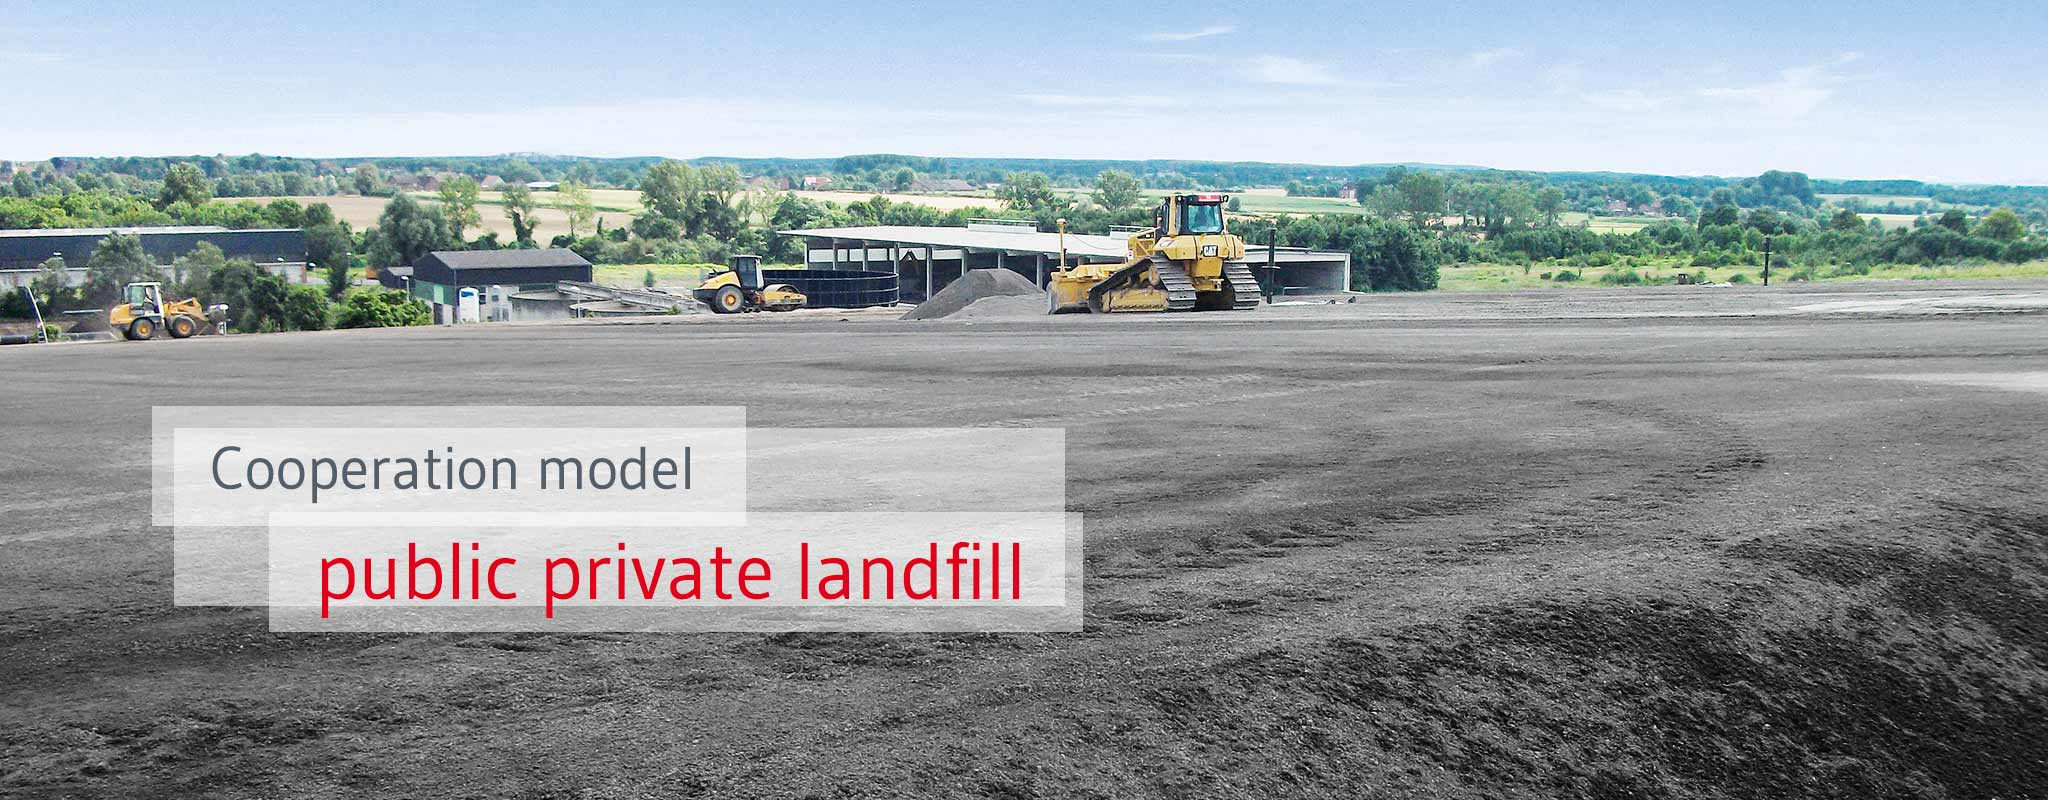 Collaboration on landfill projects with prepaid landfill